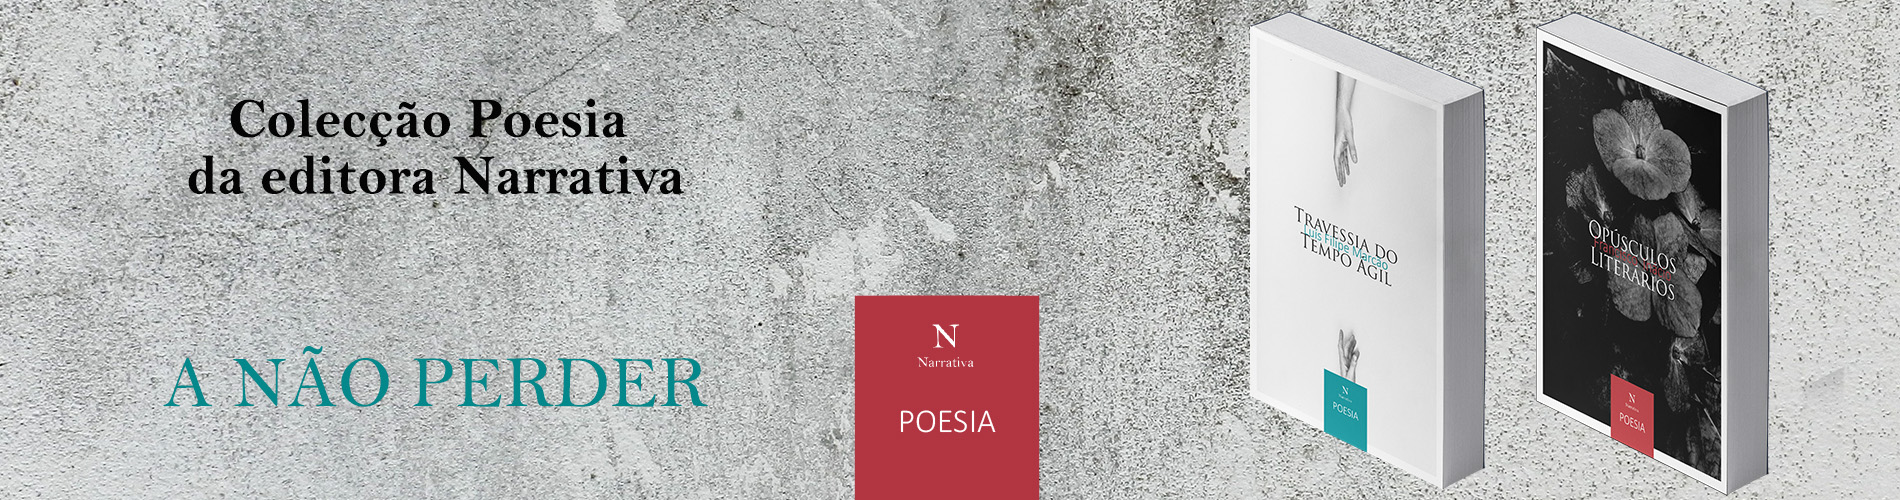 /fileuploads/BANNER/_Banner Poesia Narrativa.jpg